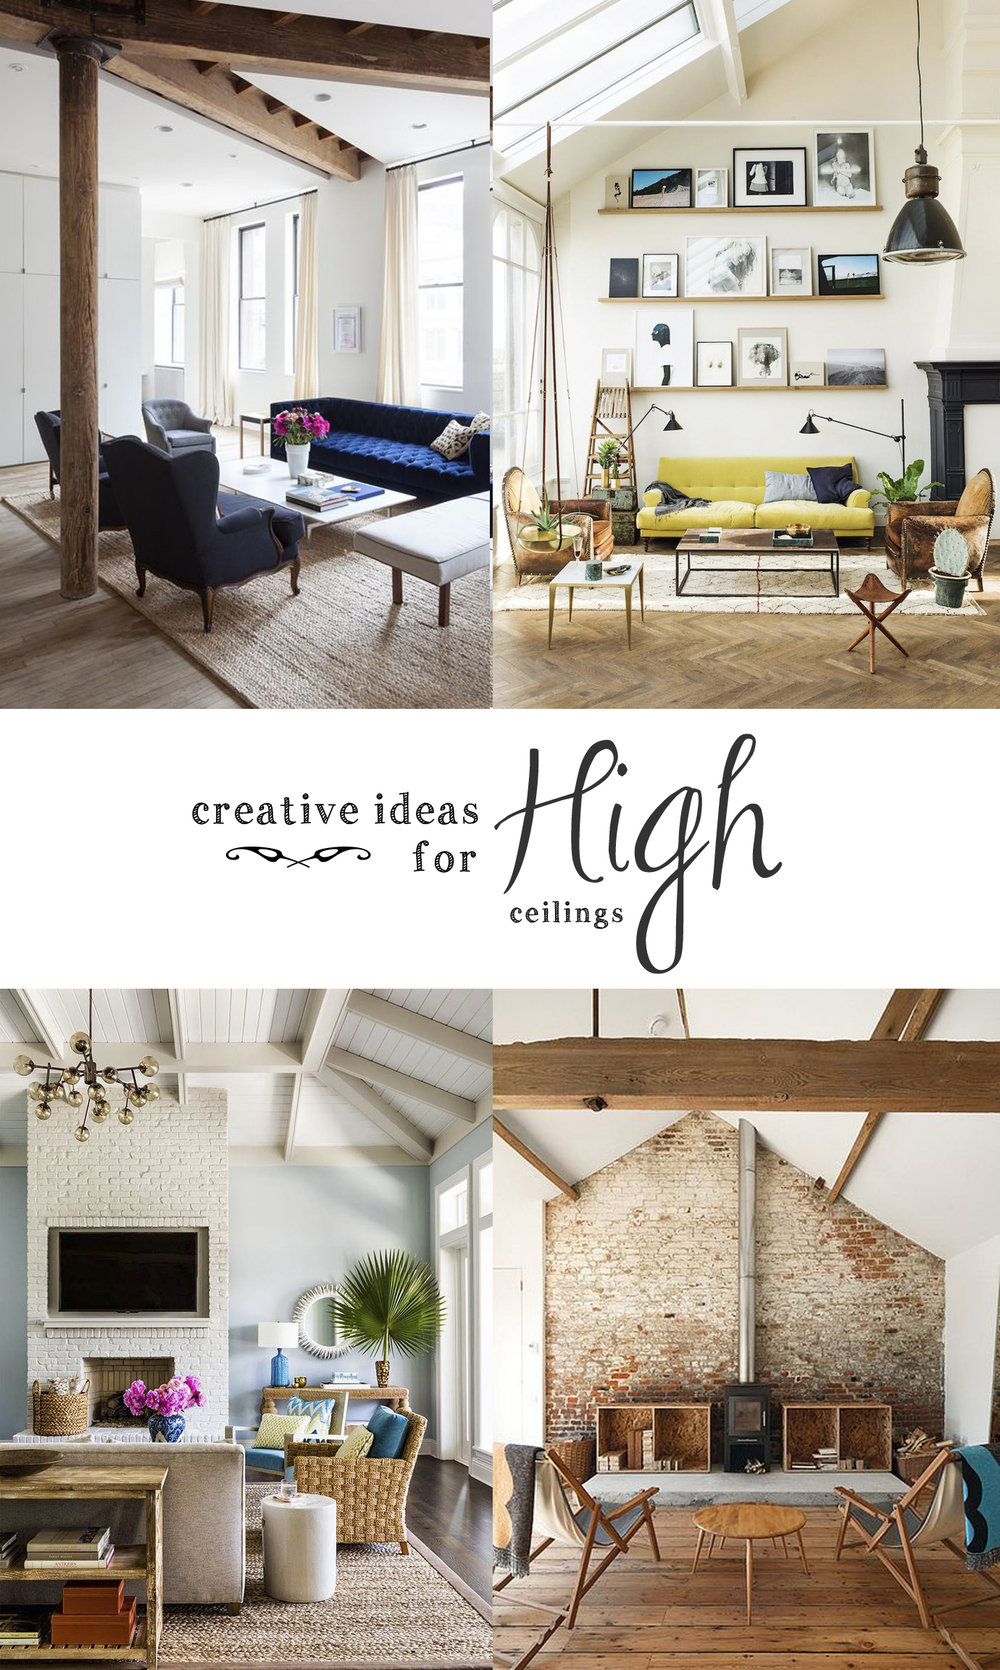 6 creative ideas for high ceilings